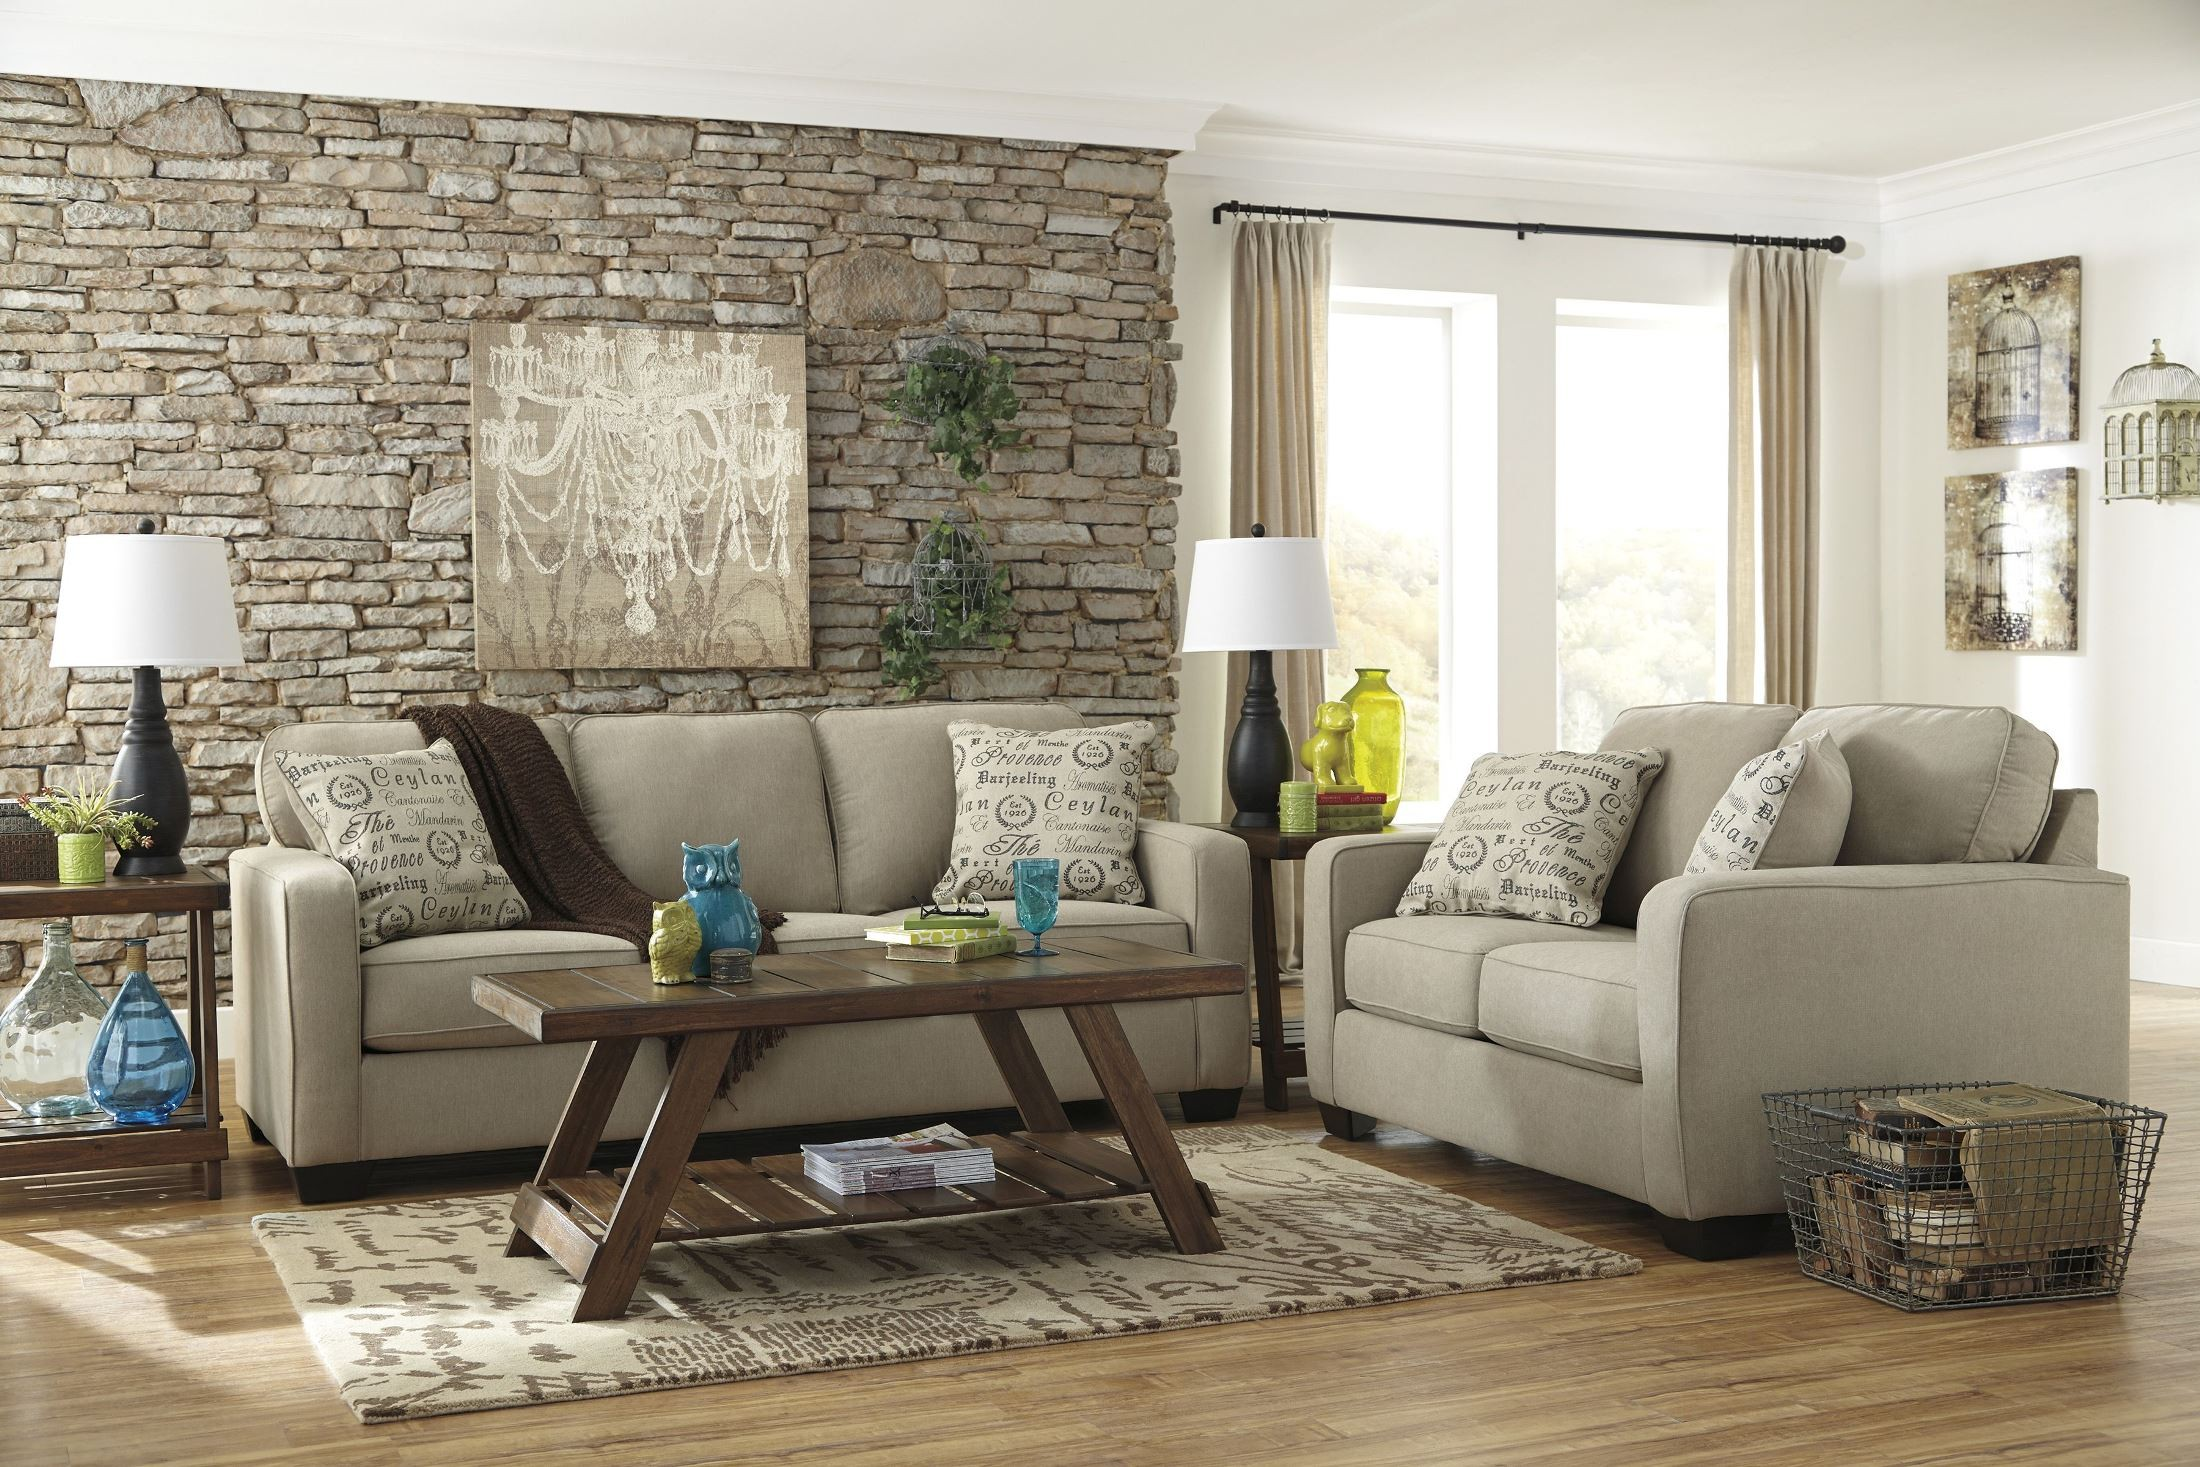 ashley alenya quartz sofa reviews l sectional india queen sleeper from 1660039